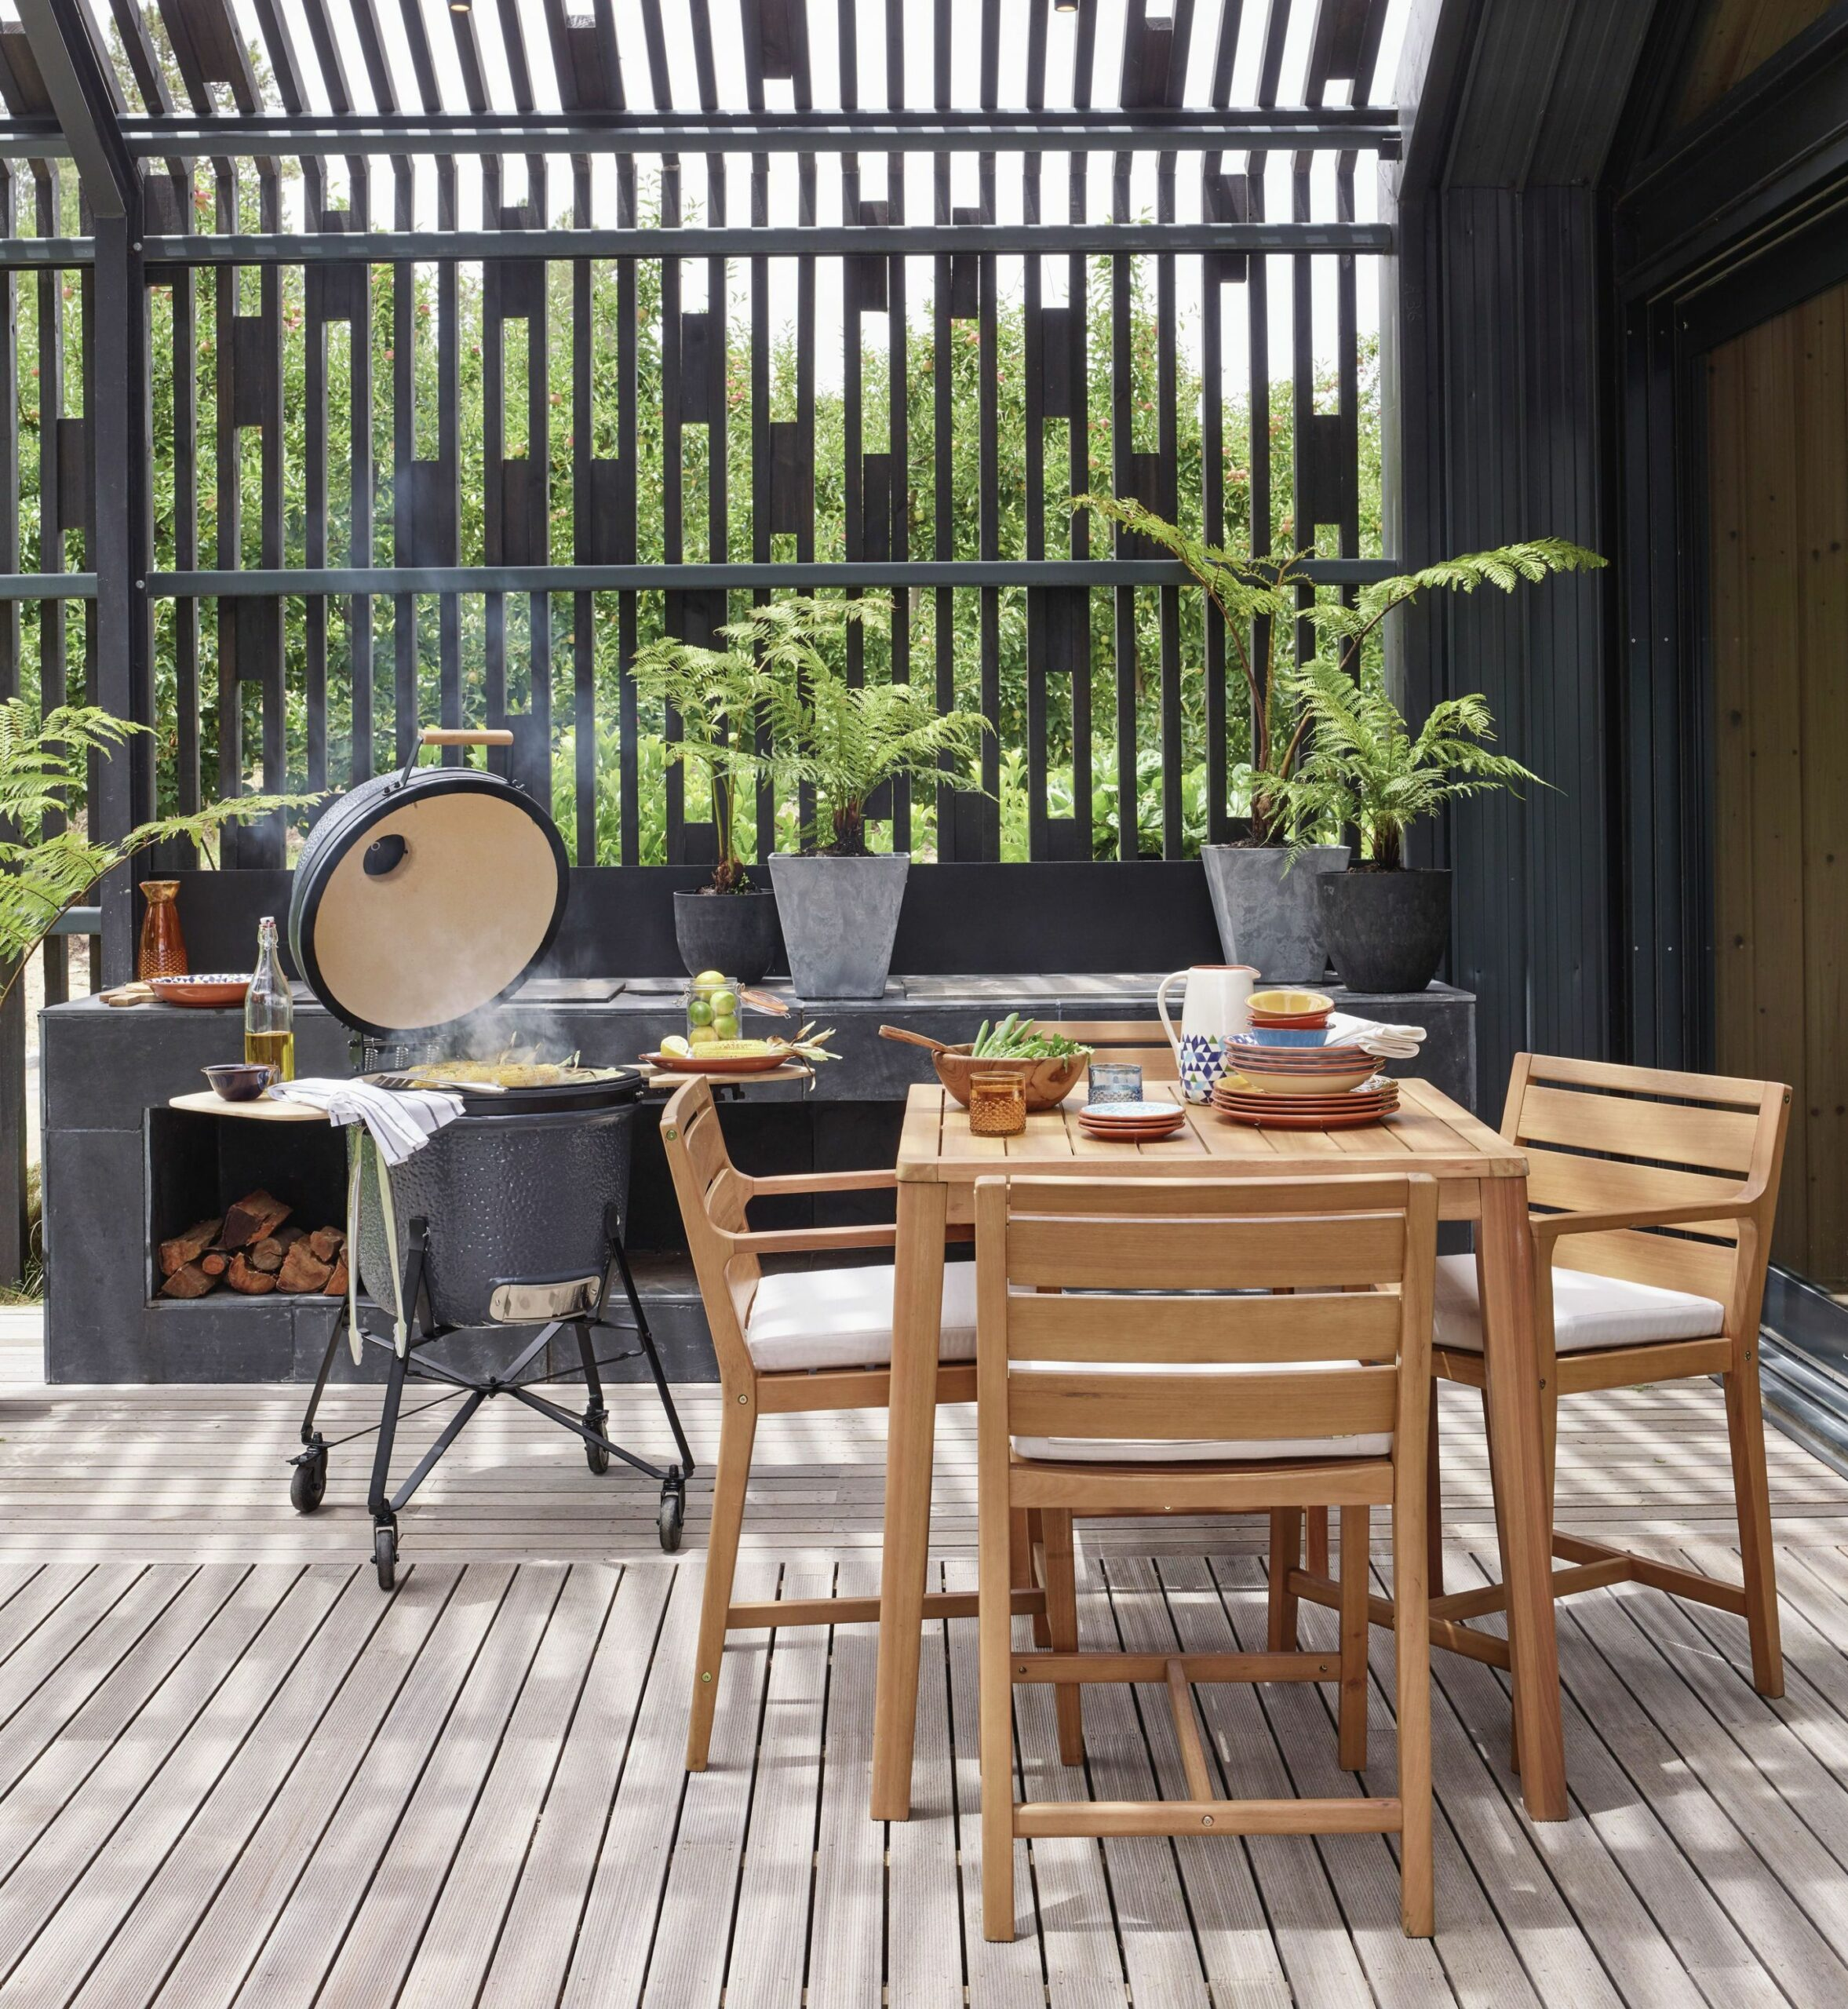 BBQ Ideas - Ultimate Guide To Hosting A Barbecue Party This Summer